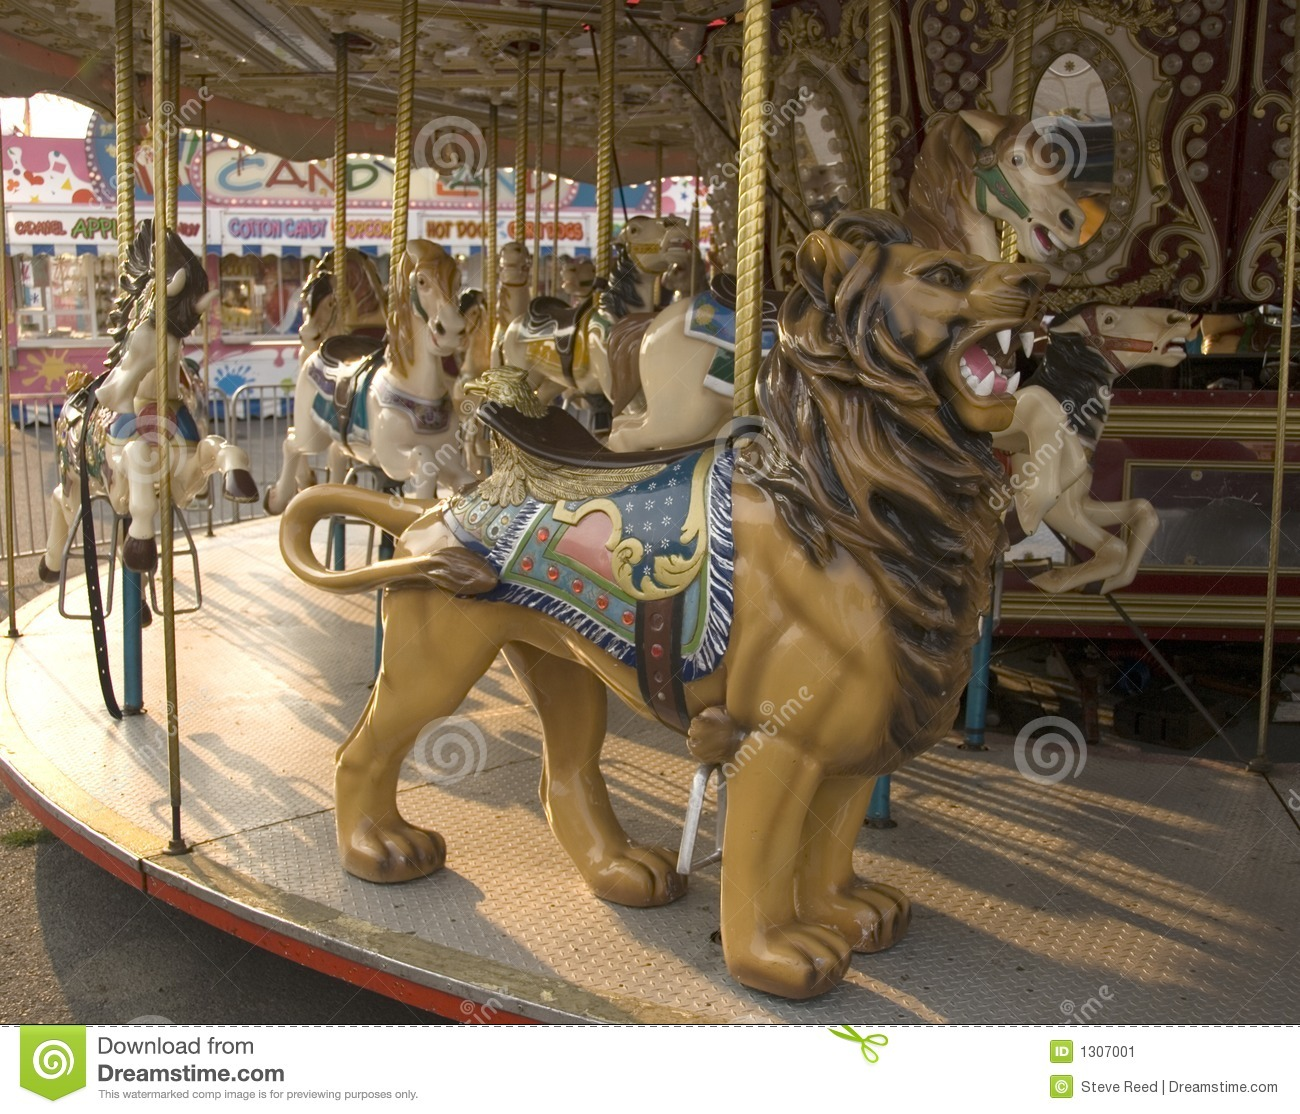 Carousel Horse And Lion Stock Image  Image 1307001